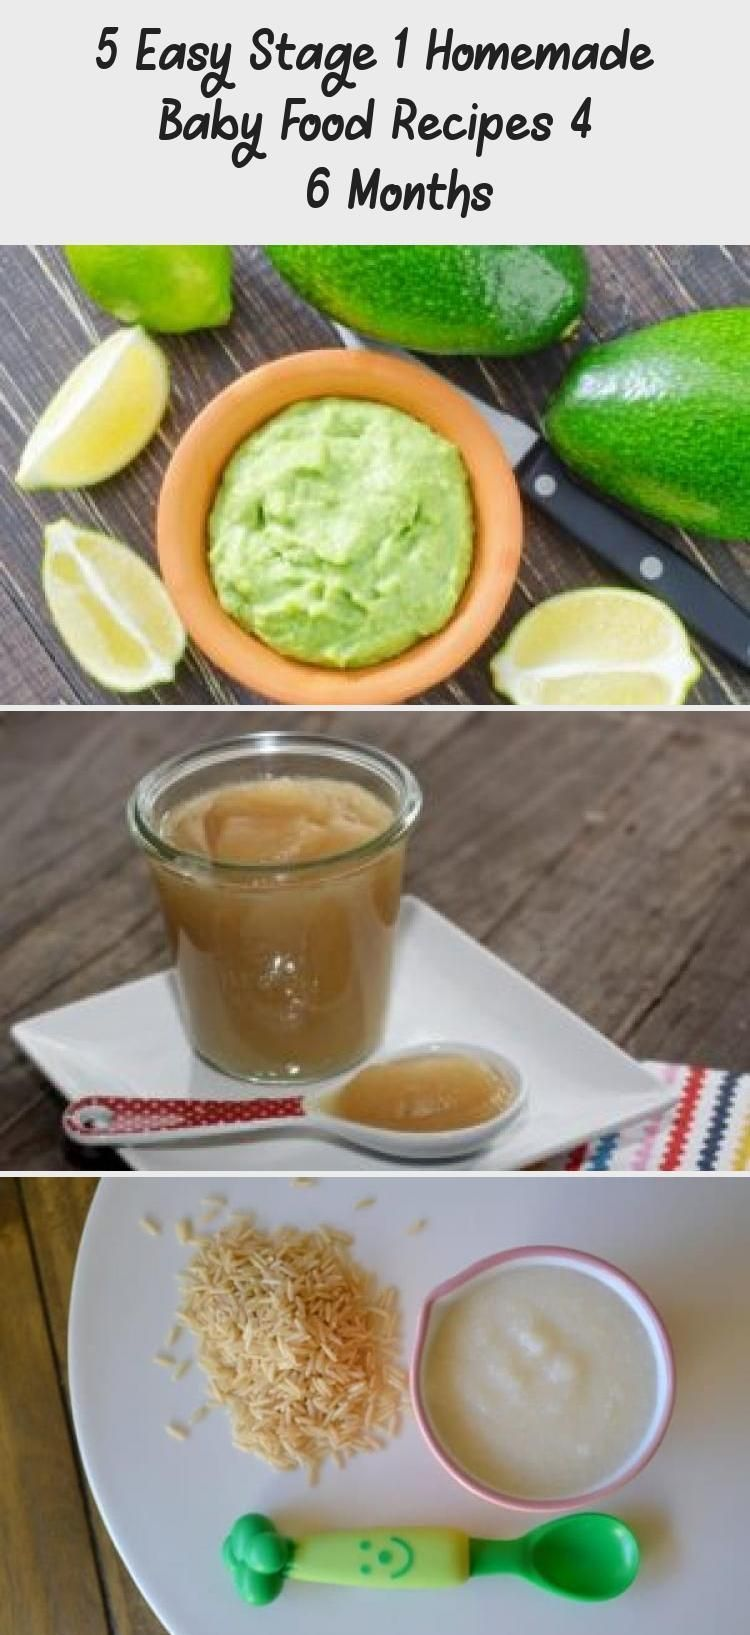 5 easy stage 1 homemade baby food recipes 4 6 months